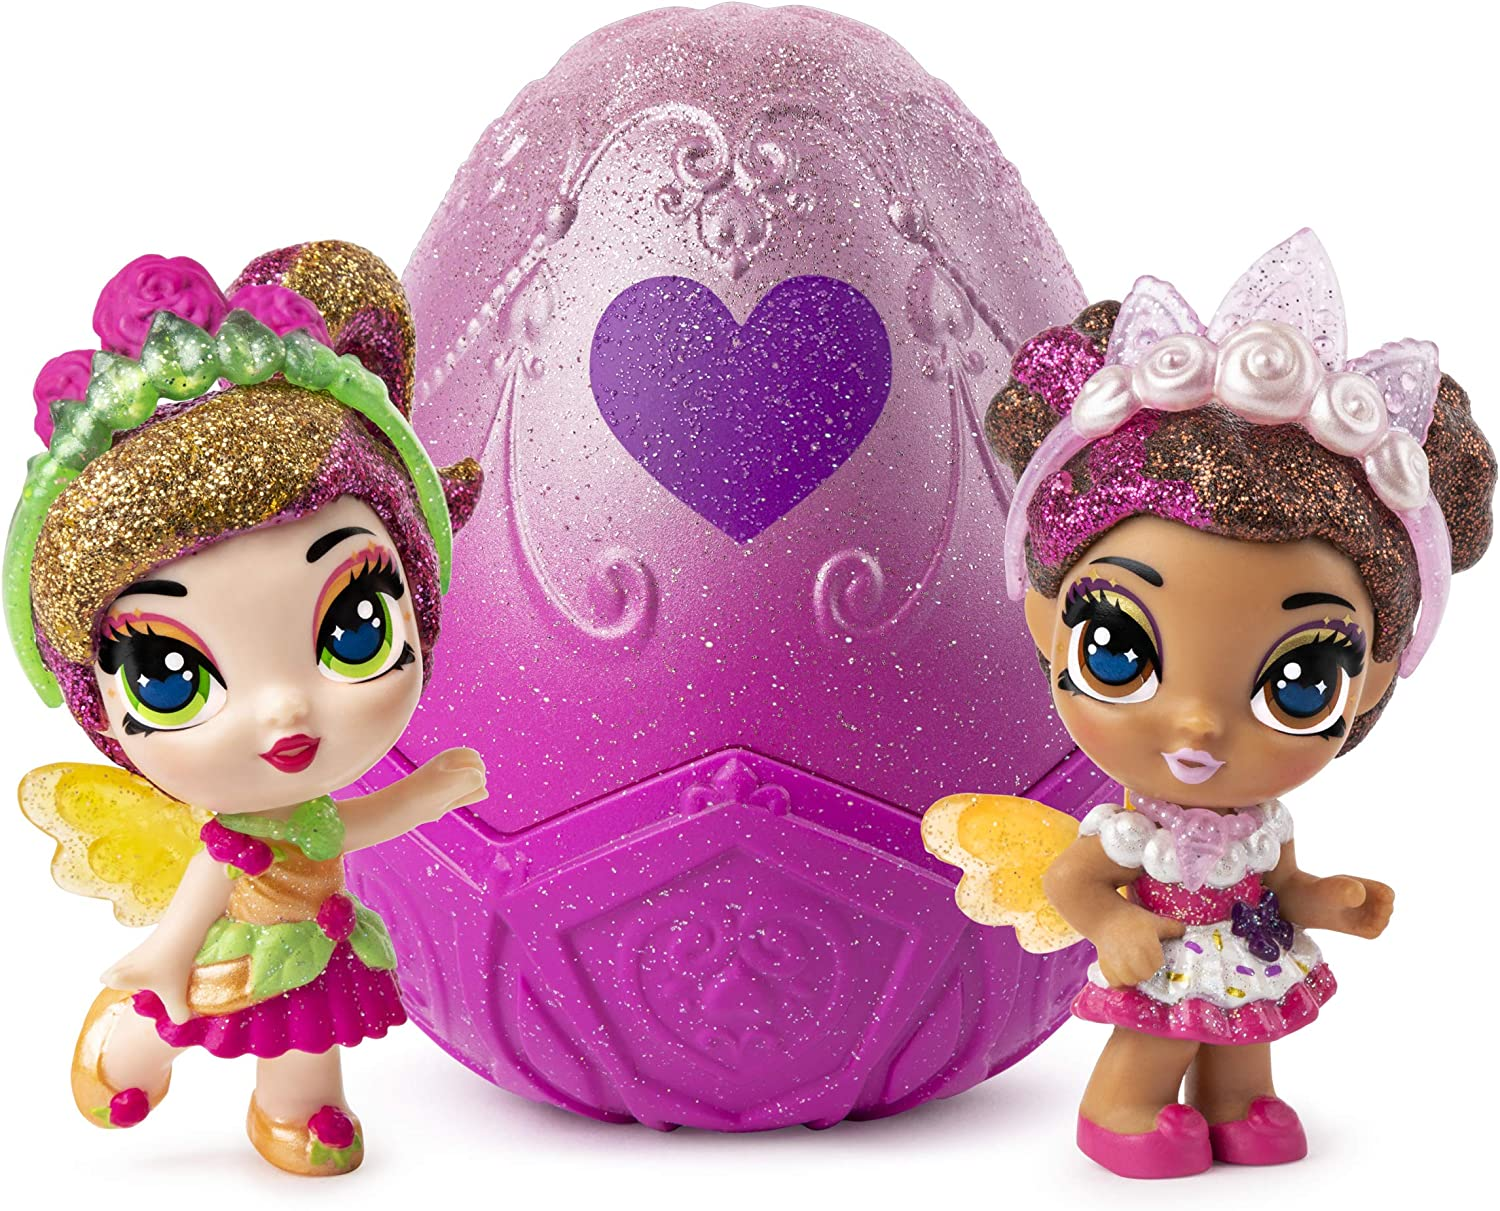 Hatchimals Pixies Royal SnowBall Pink Mystery Egg Magical Snow Ball Surprise